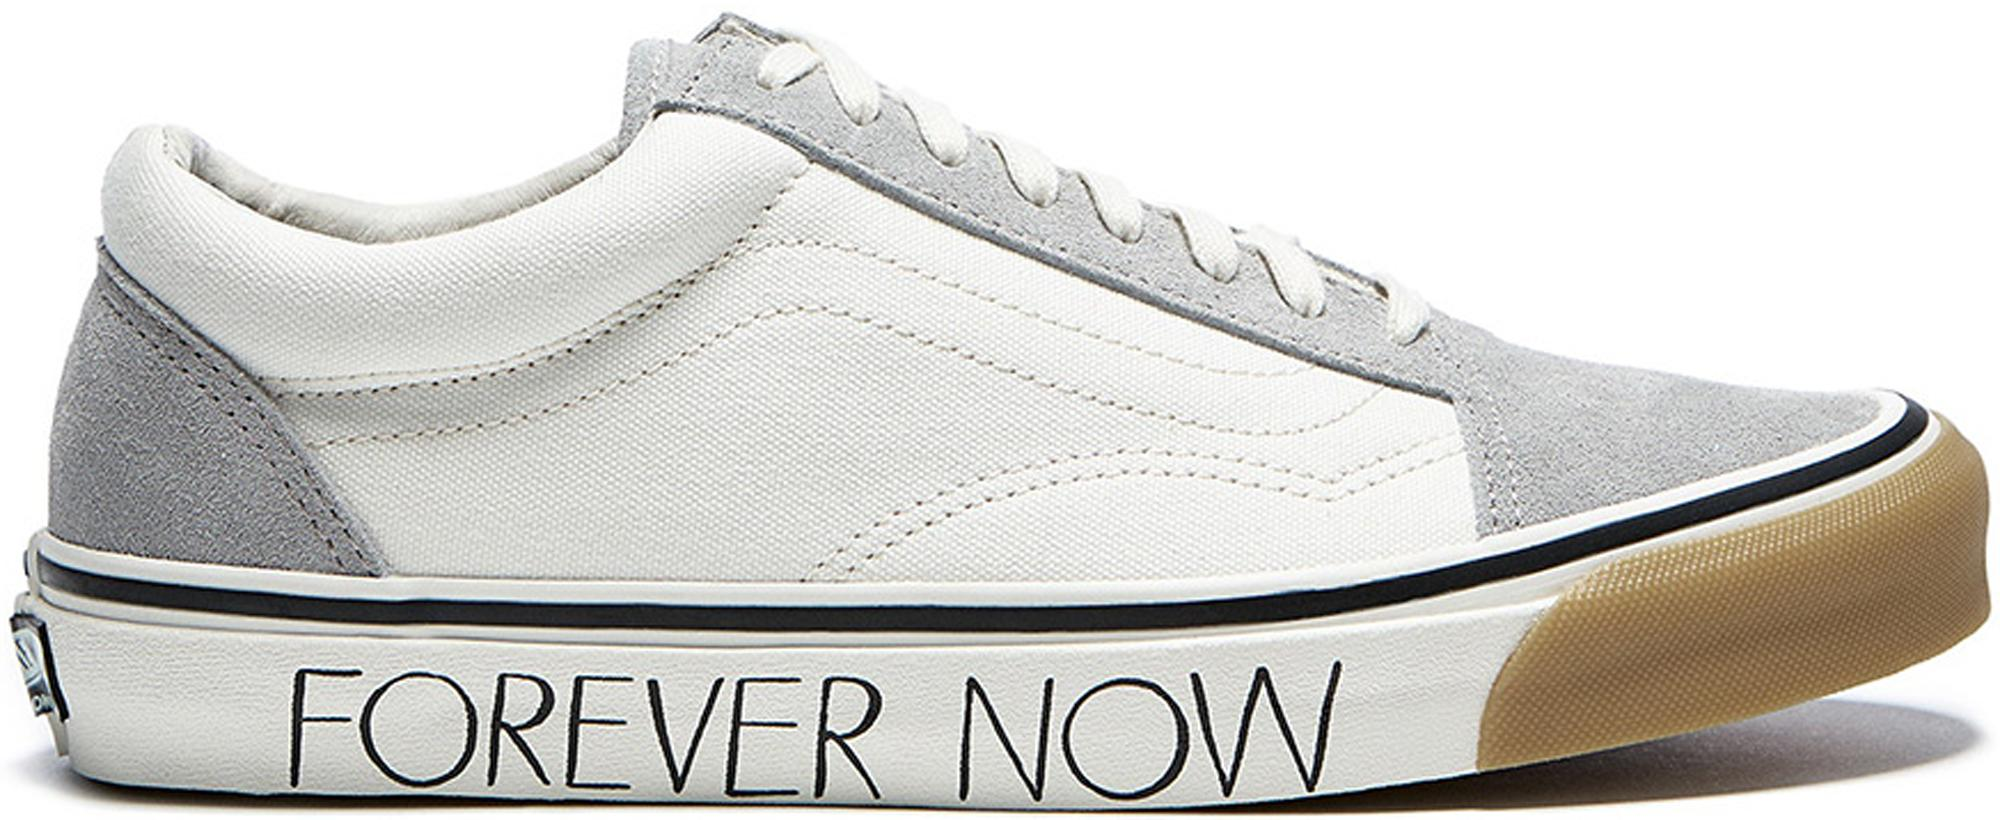 e61bae3865 Lyst - Vans Old Skool Wood Wood Forever Now in White for Men